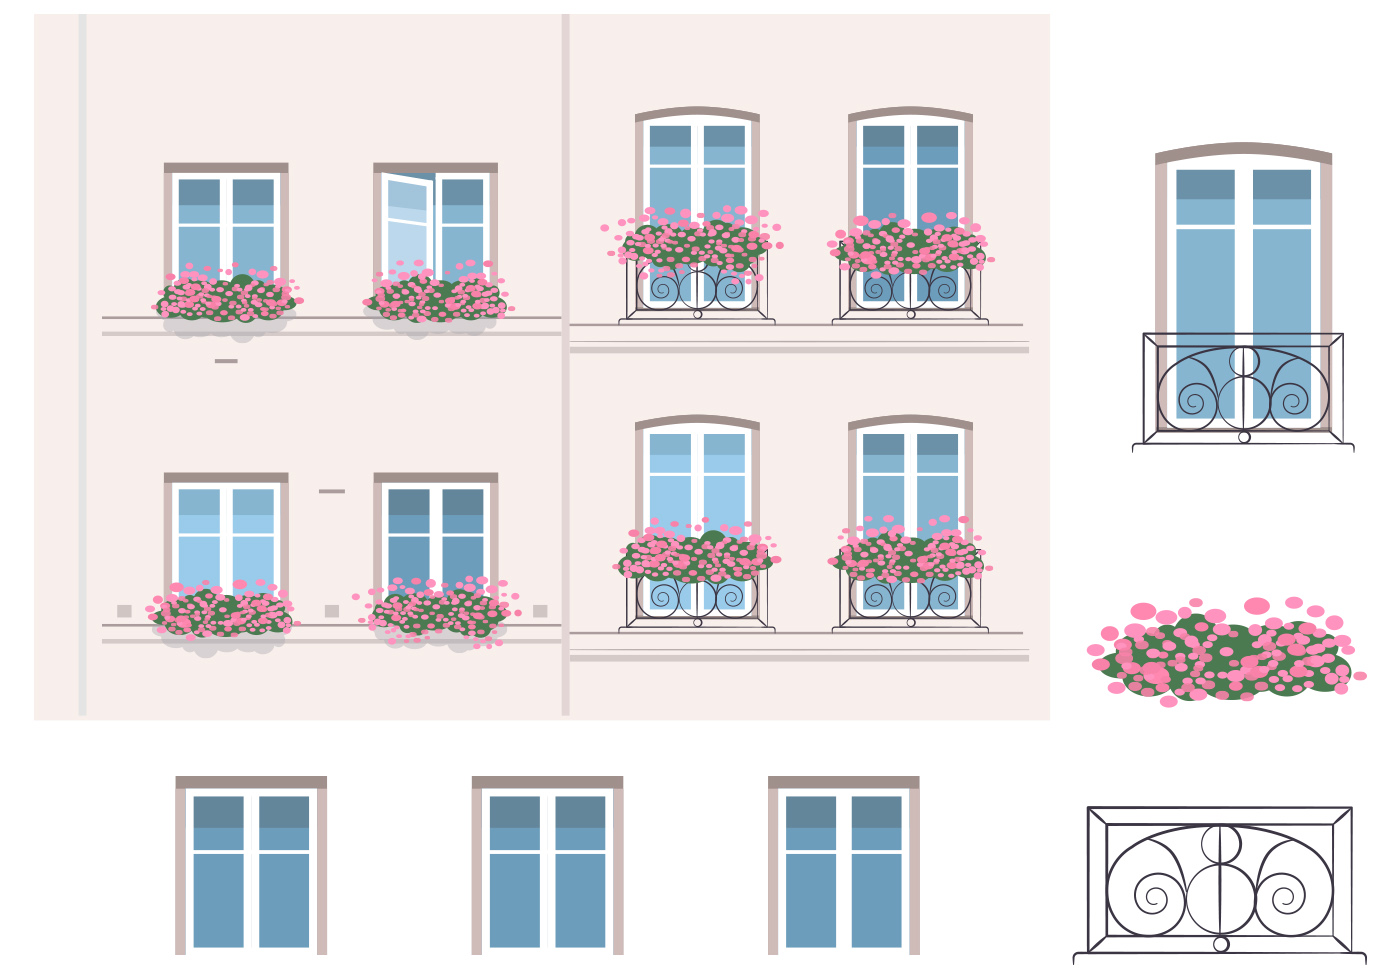 Architecture and balcony vector elements download free for Balcony vector